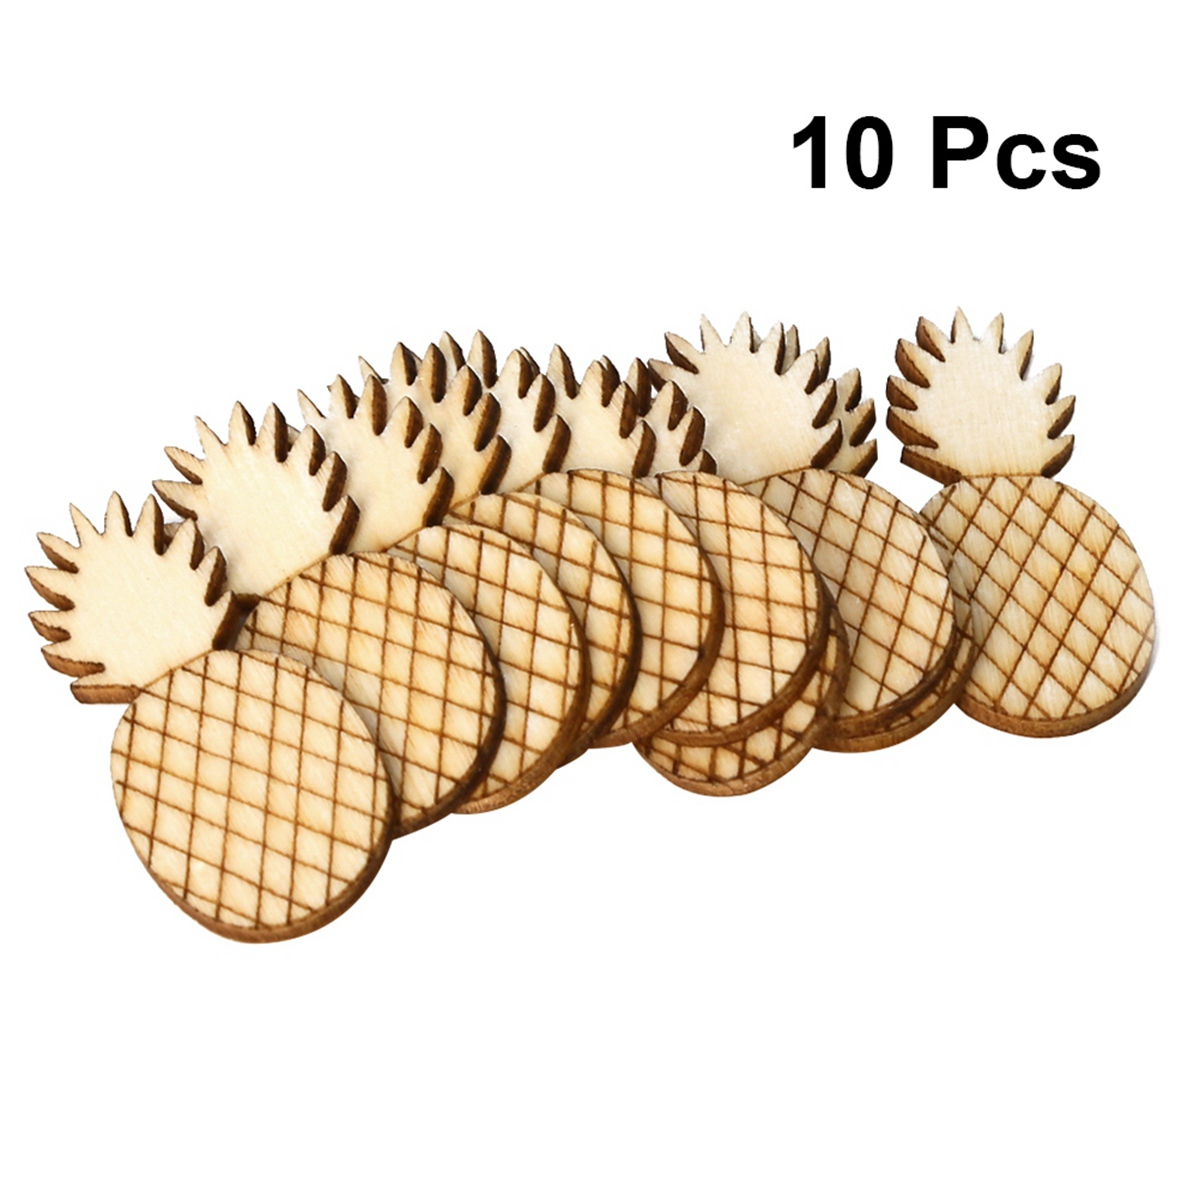 10pcs Funny Creative Painting DIY Wood Pineapple Ornament for Festival Gathering